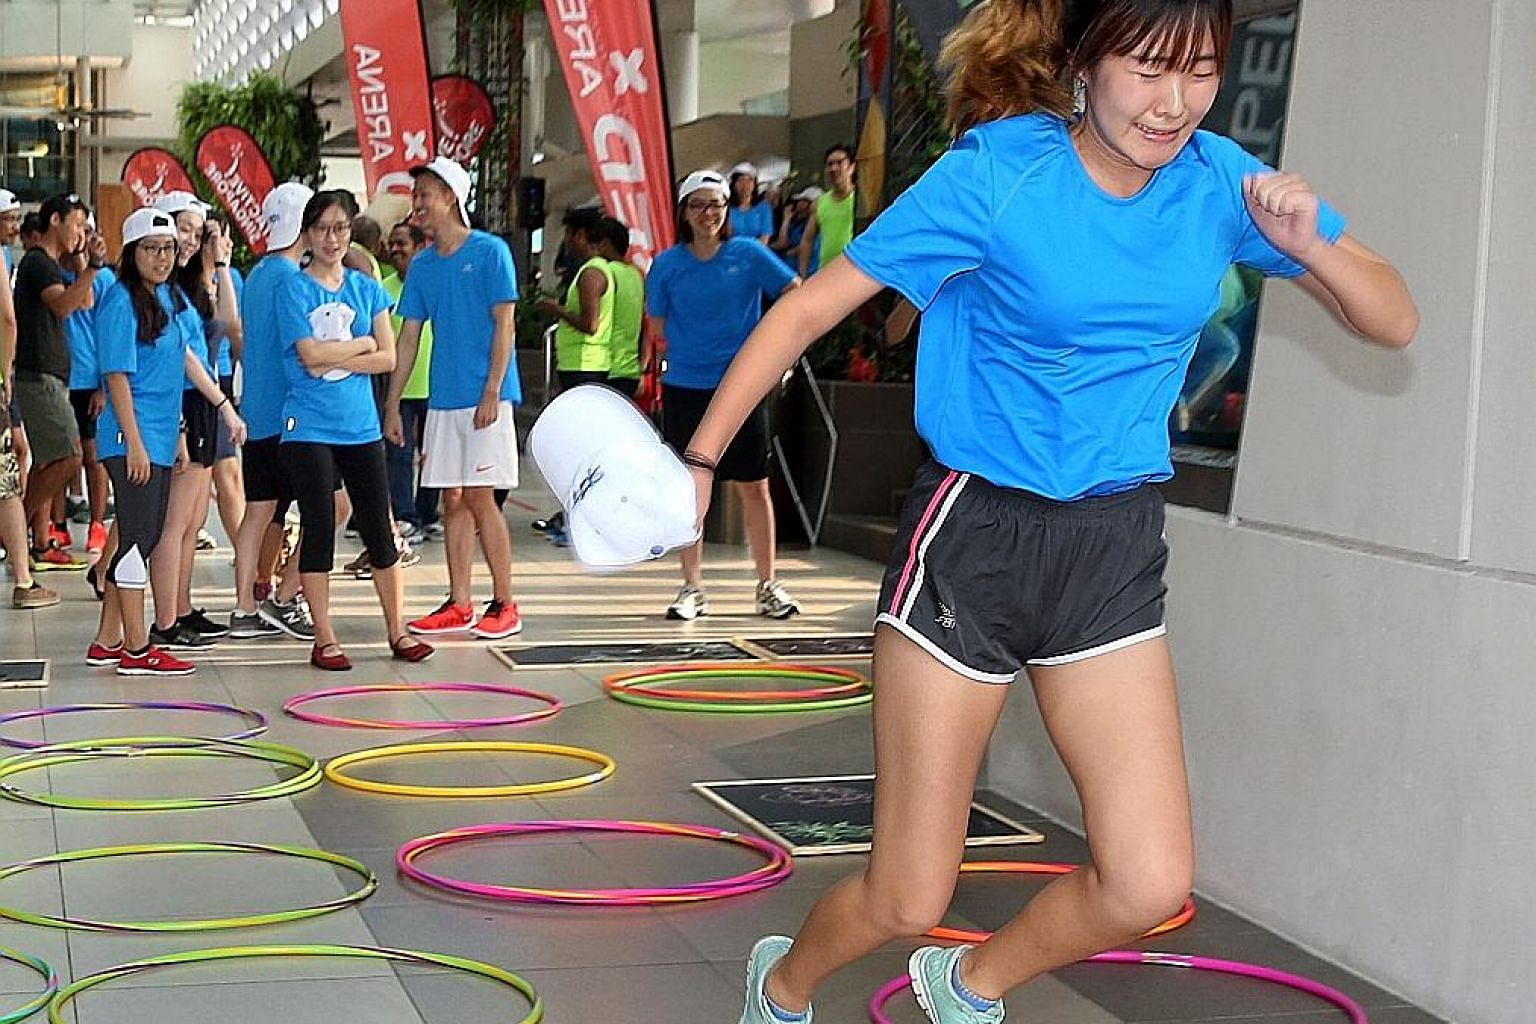 A participant trying out one of the PlayStreets games - a creative and cultural fitness scheme run by the Singapore Wellness Association and endorsed by the Active Enabler programme.